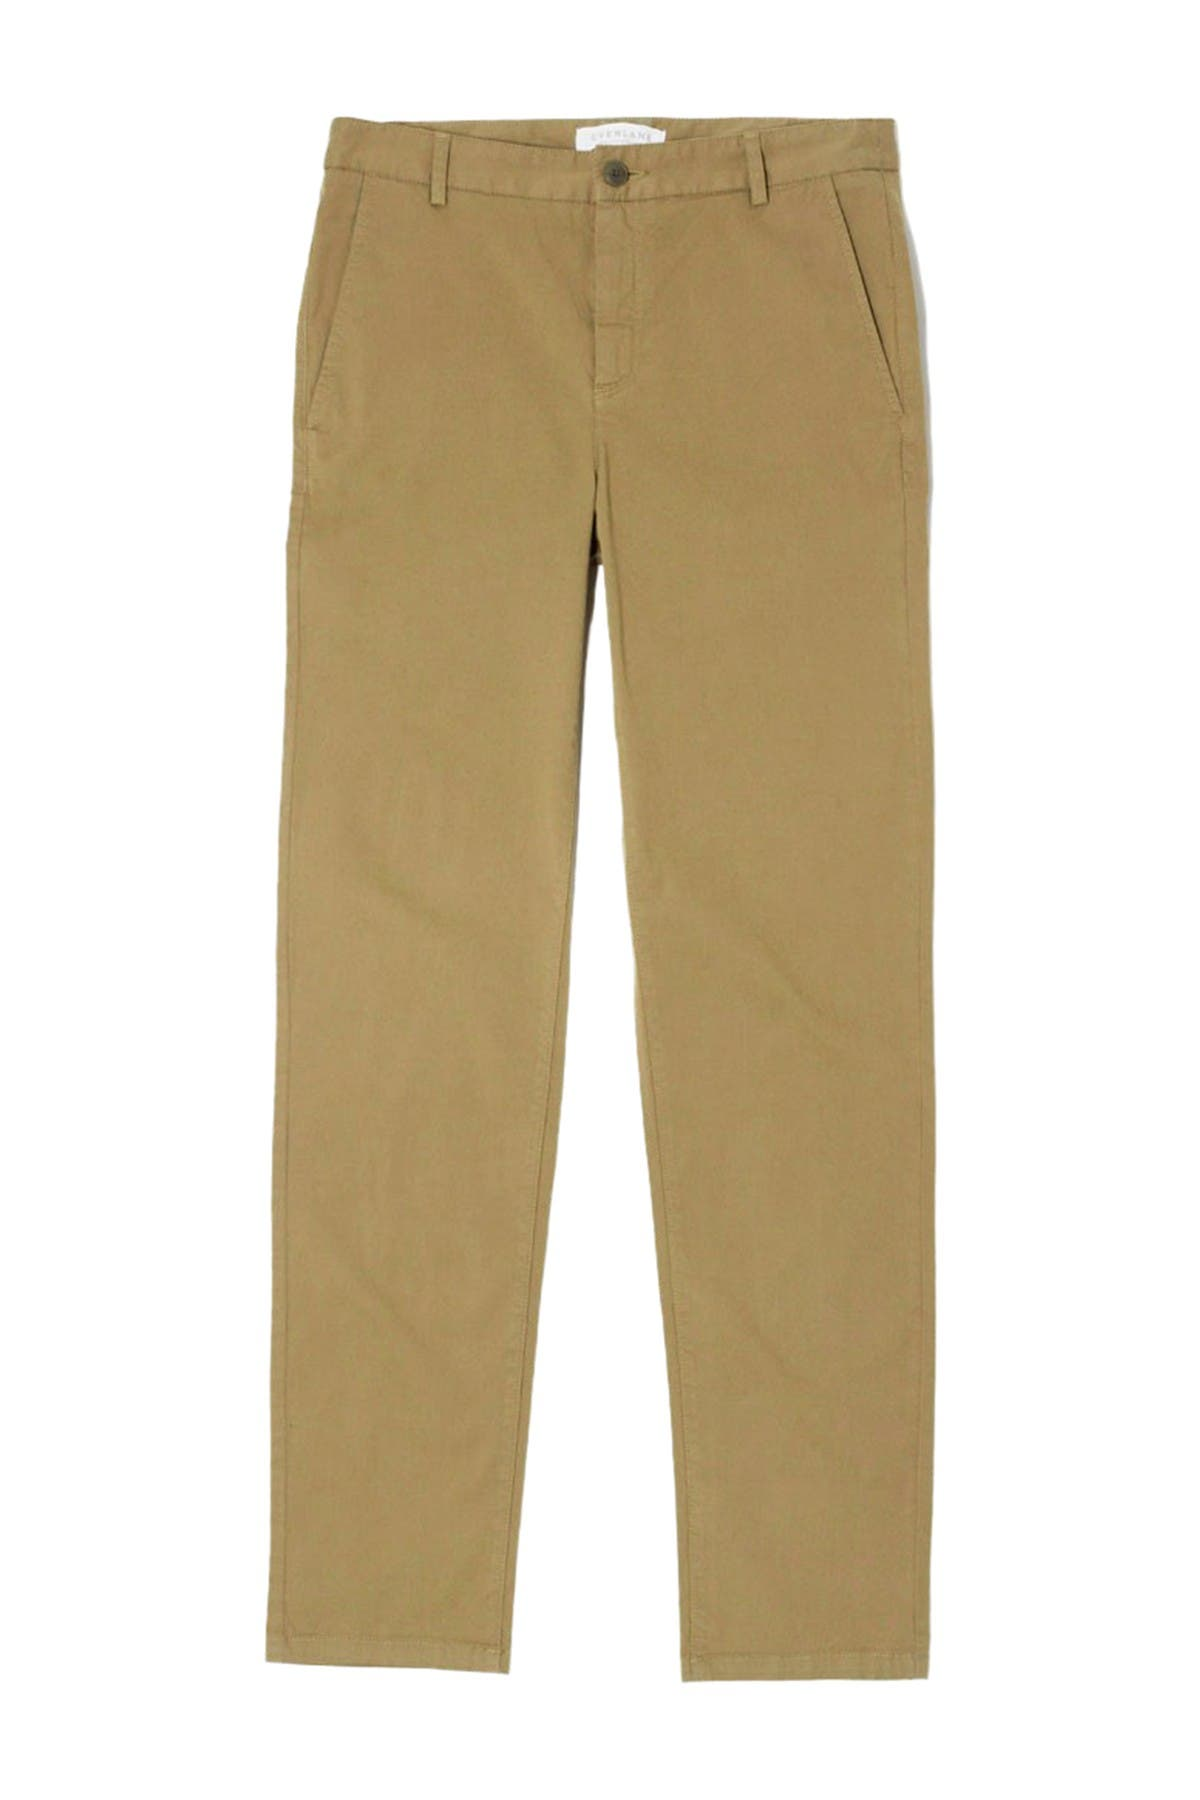 Image of EVERLANE Midweight Slim Fit Chino Pant